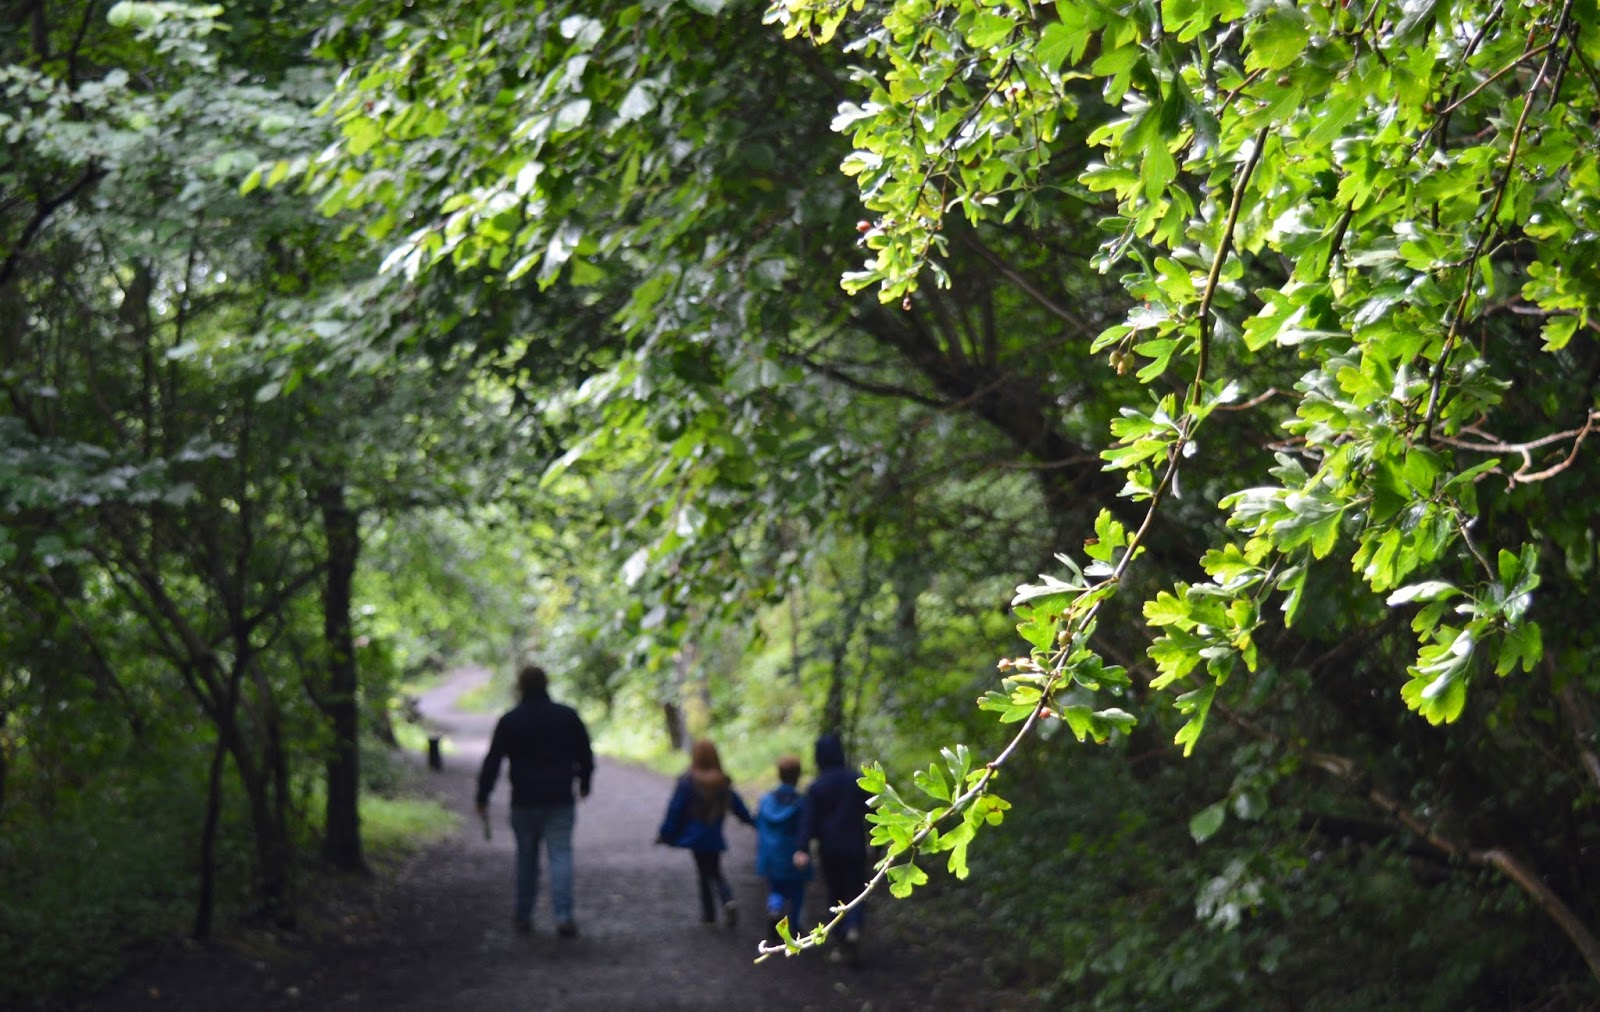 10 of the best family walks in North East England with a cafe and play park nearby - Thornley Woodlands